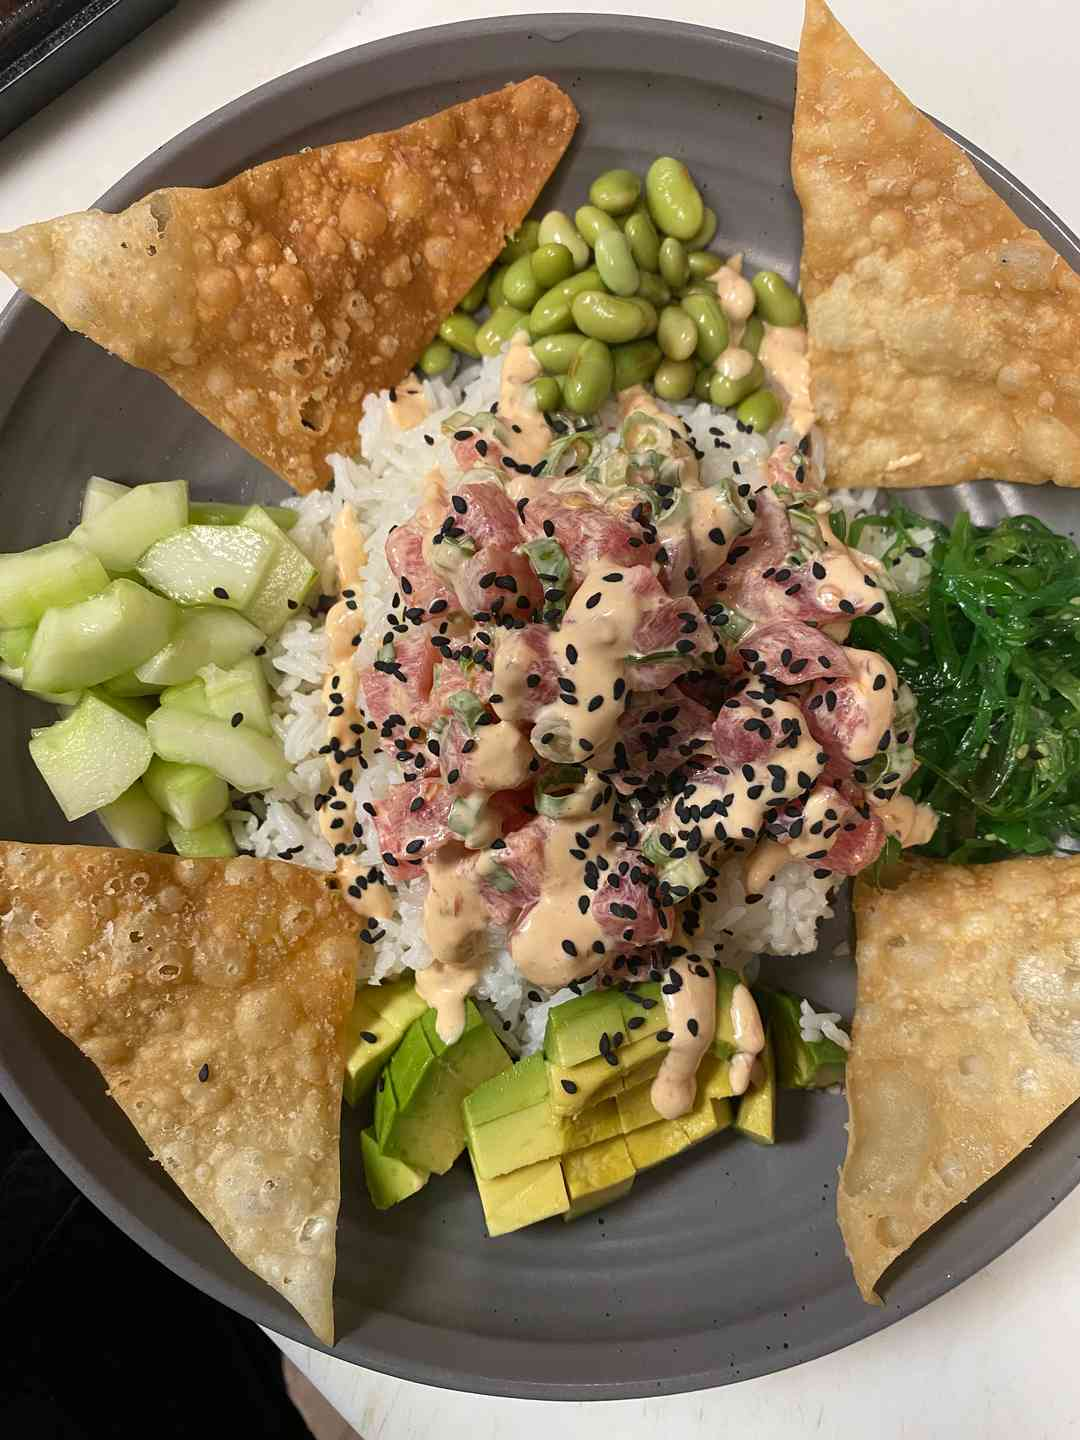 TUNA POKE BOWL (TRADITIONAL OR SPICY PELE'S KISS)